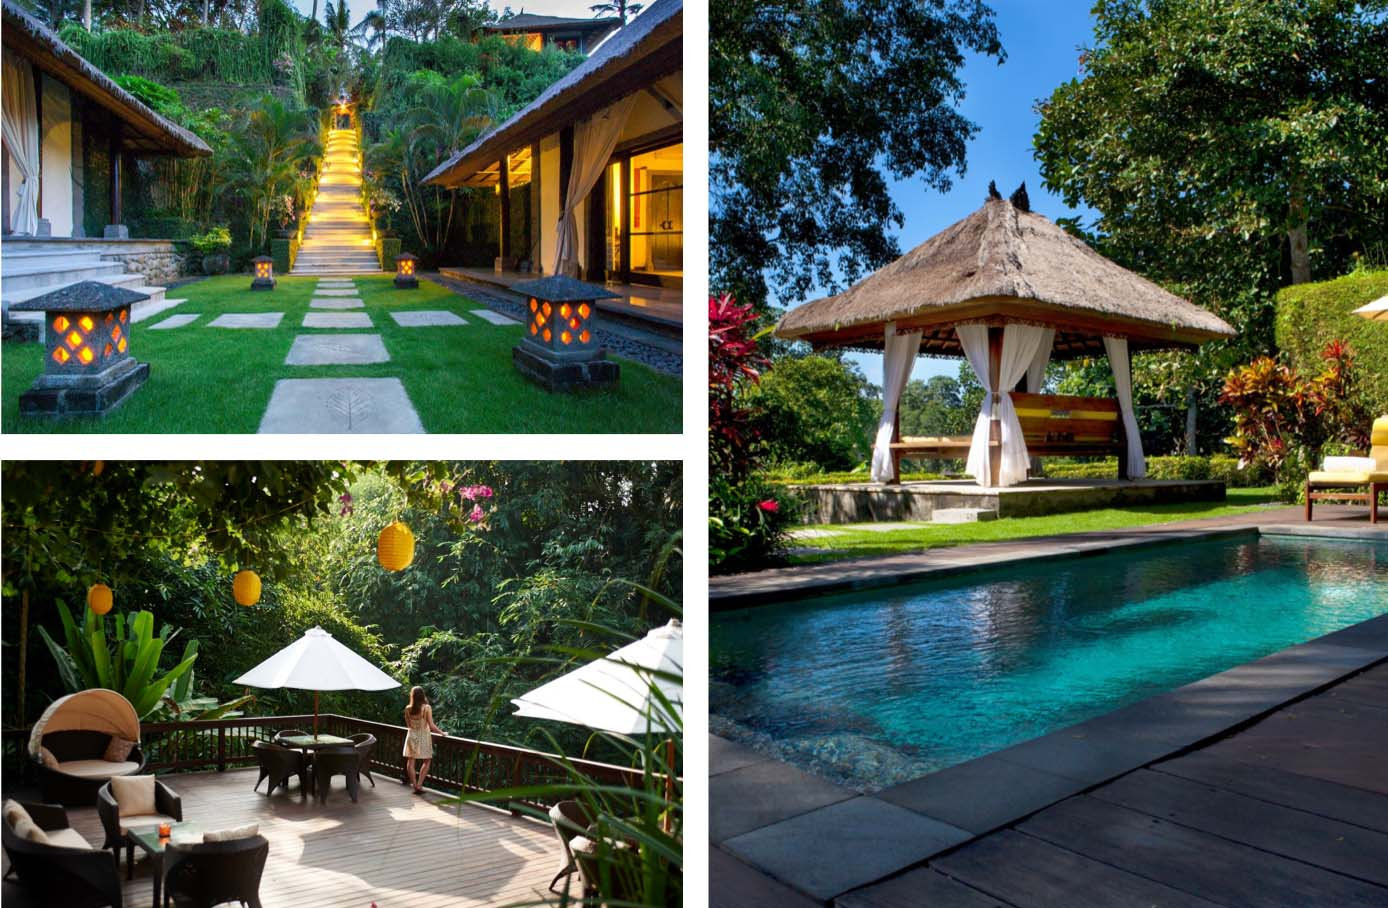 Sukhavati-Ayurvedic-Retreat-Spa-Bali